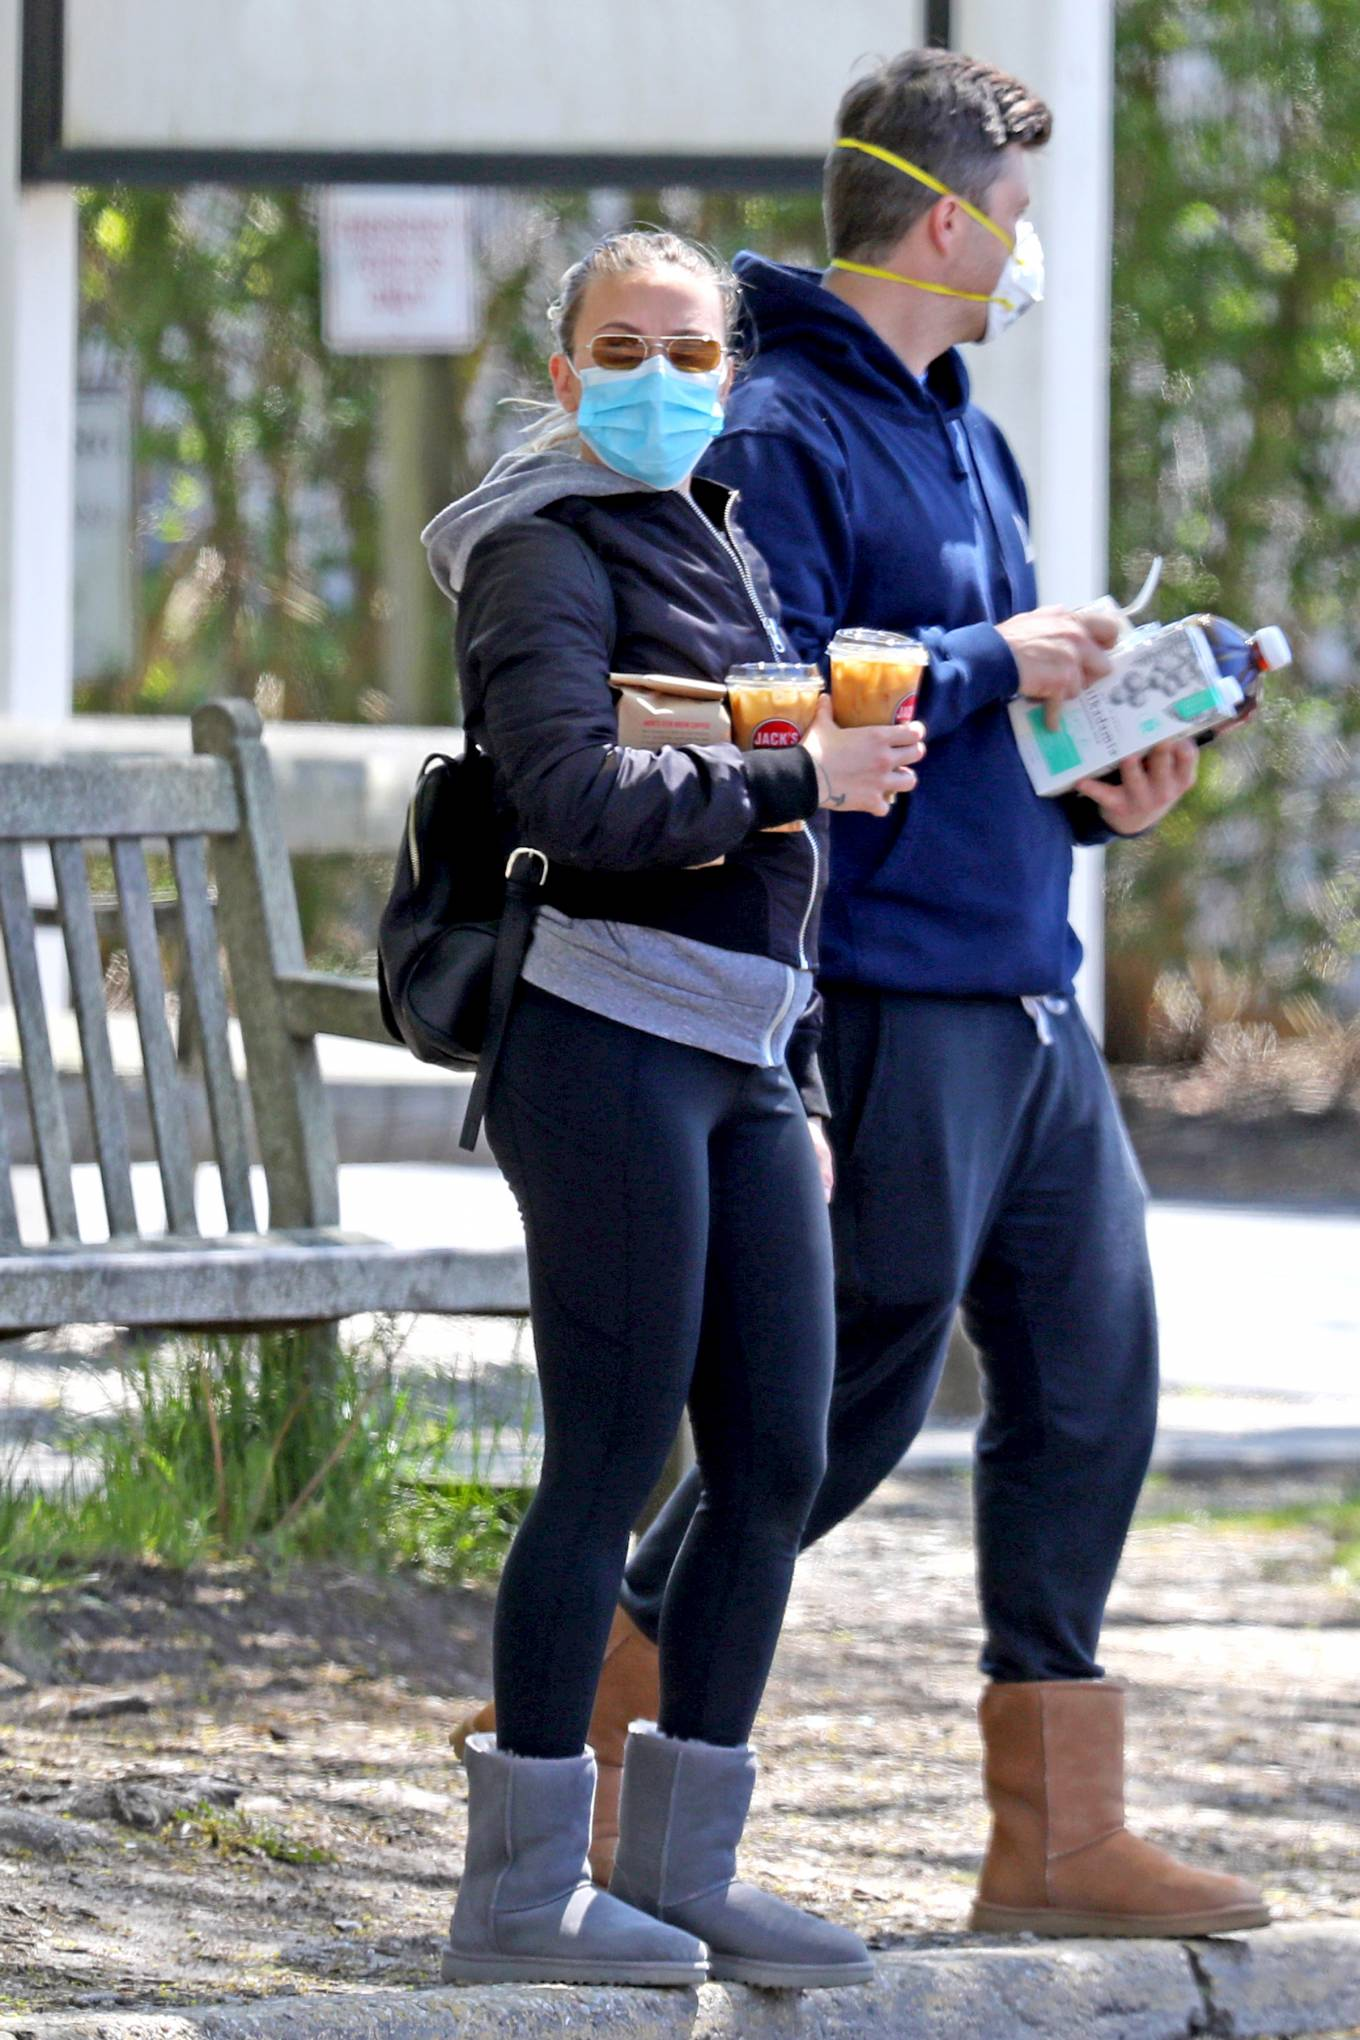 Scarlett Johansson 20black Leggings 20grey Ugg Boots 20black Hoodie 20skinny 20stretch Fabric 20brown Sunglasses 204 Scarlett Johansson Black Skinny Leggings Street Style Spring Summer 2020 Image 1 Sassy Daily Fashion News